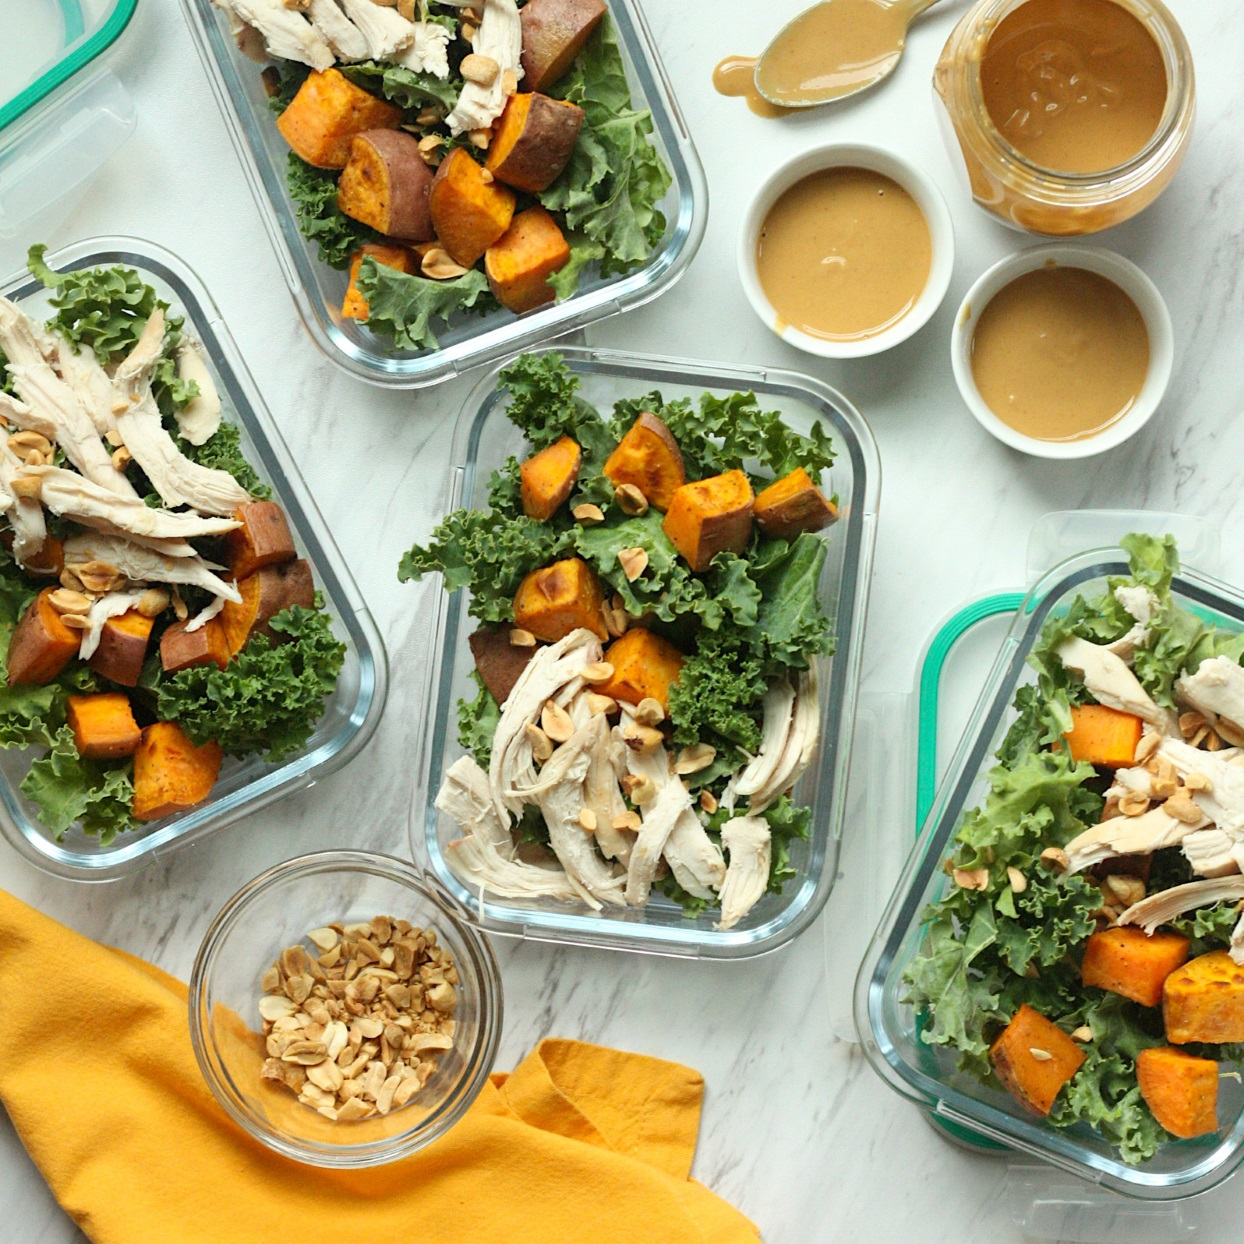 These hearty kale salads hold up well for 4 days, making them perfect for meal-prep lunches. To keep the ingredients from getting soggy, dress this salad and top it with peanuts just before serving. For a delicious vegan option, swap in roasted tofu for the chicken breast (see Associated Recipes). Source: EatingWell.com, December 2019